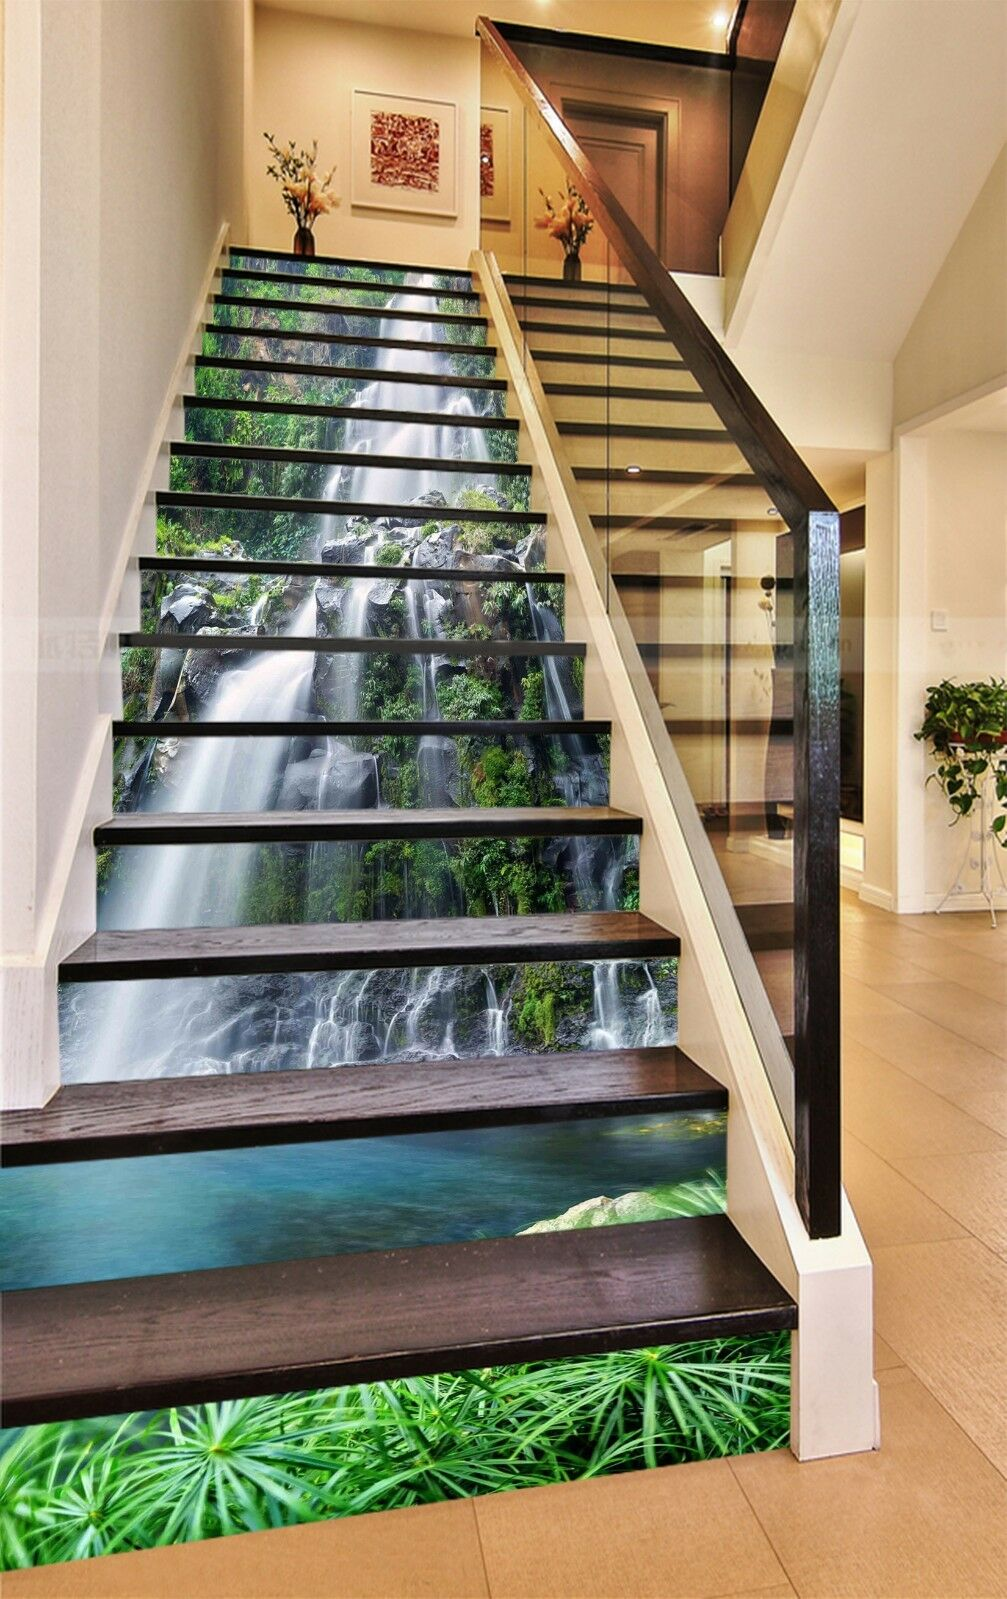 3D plunge lake Stair Risers Decoration Photo Mural Vinyl Decal Wallpaper AU